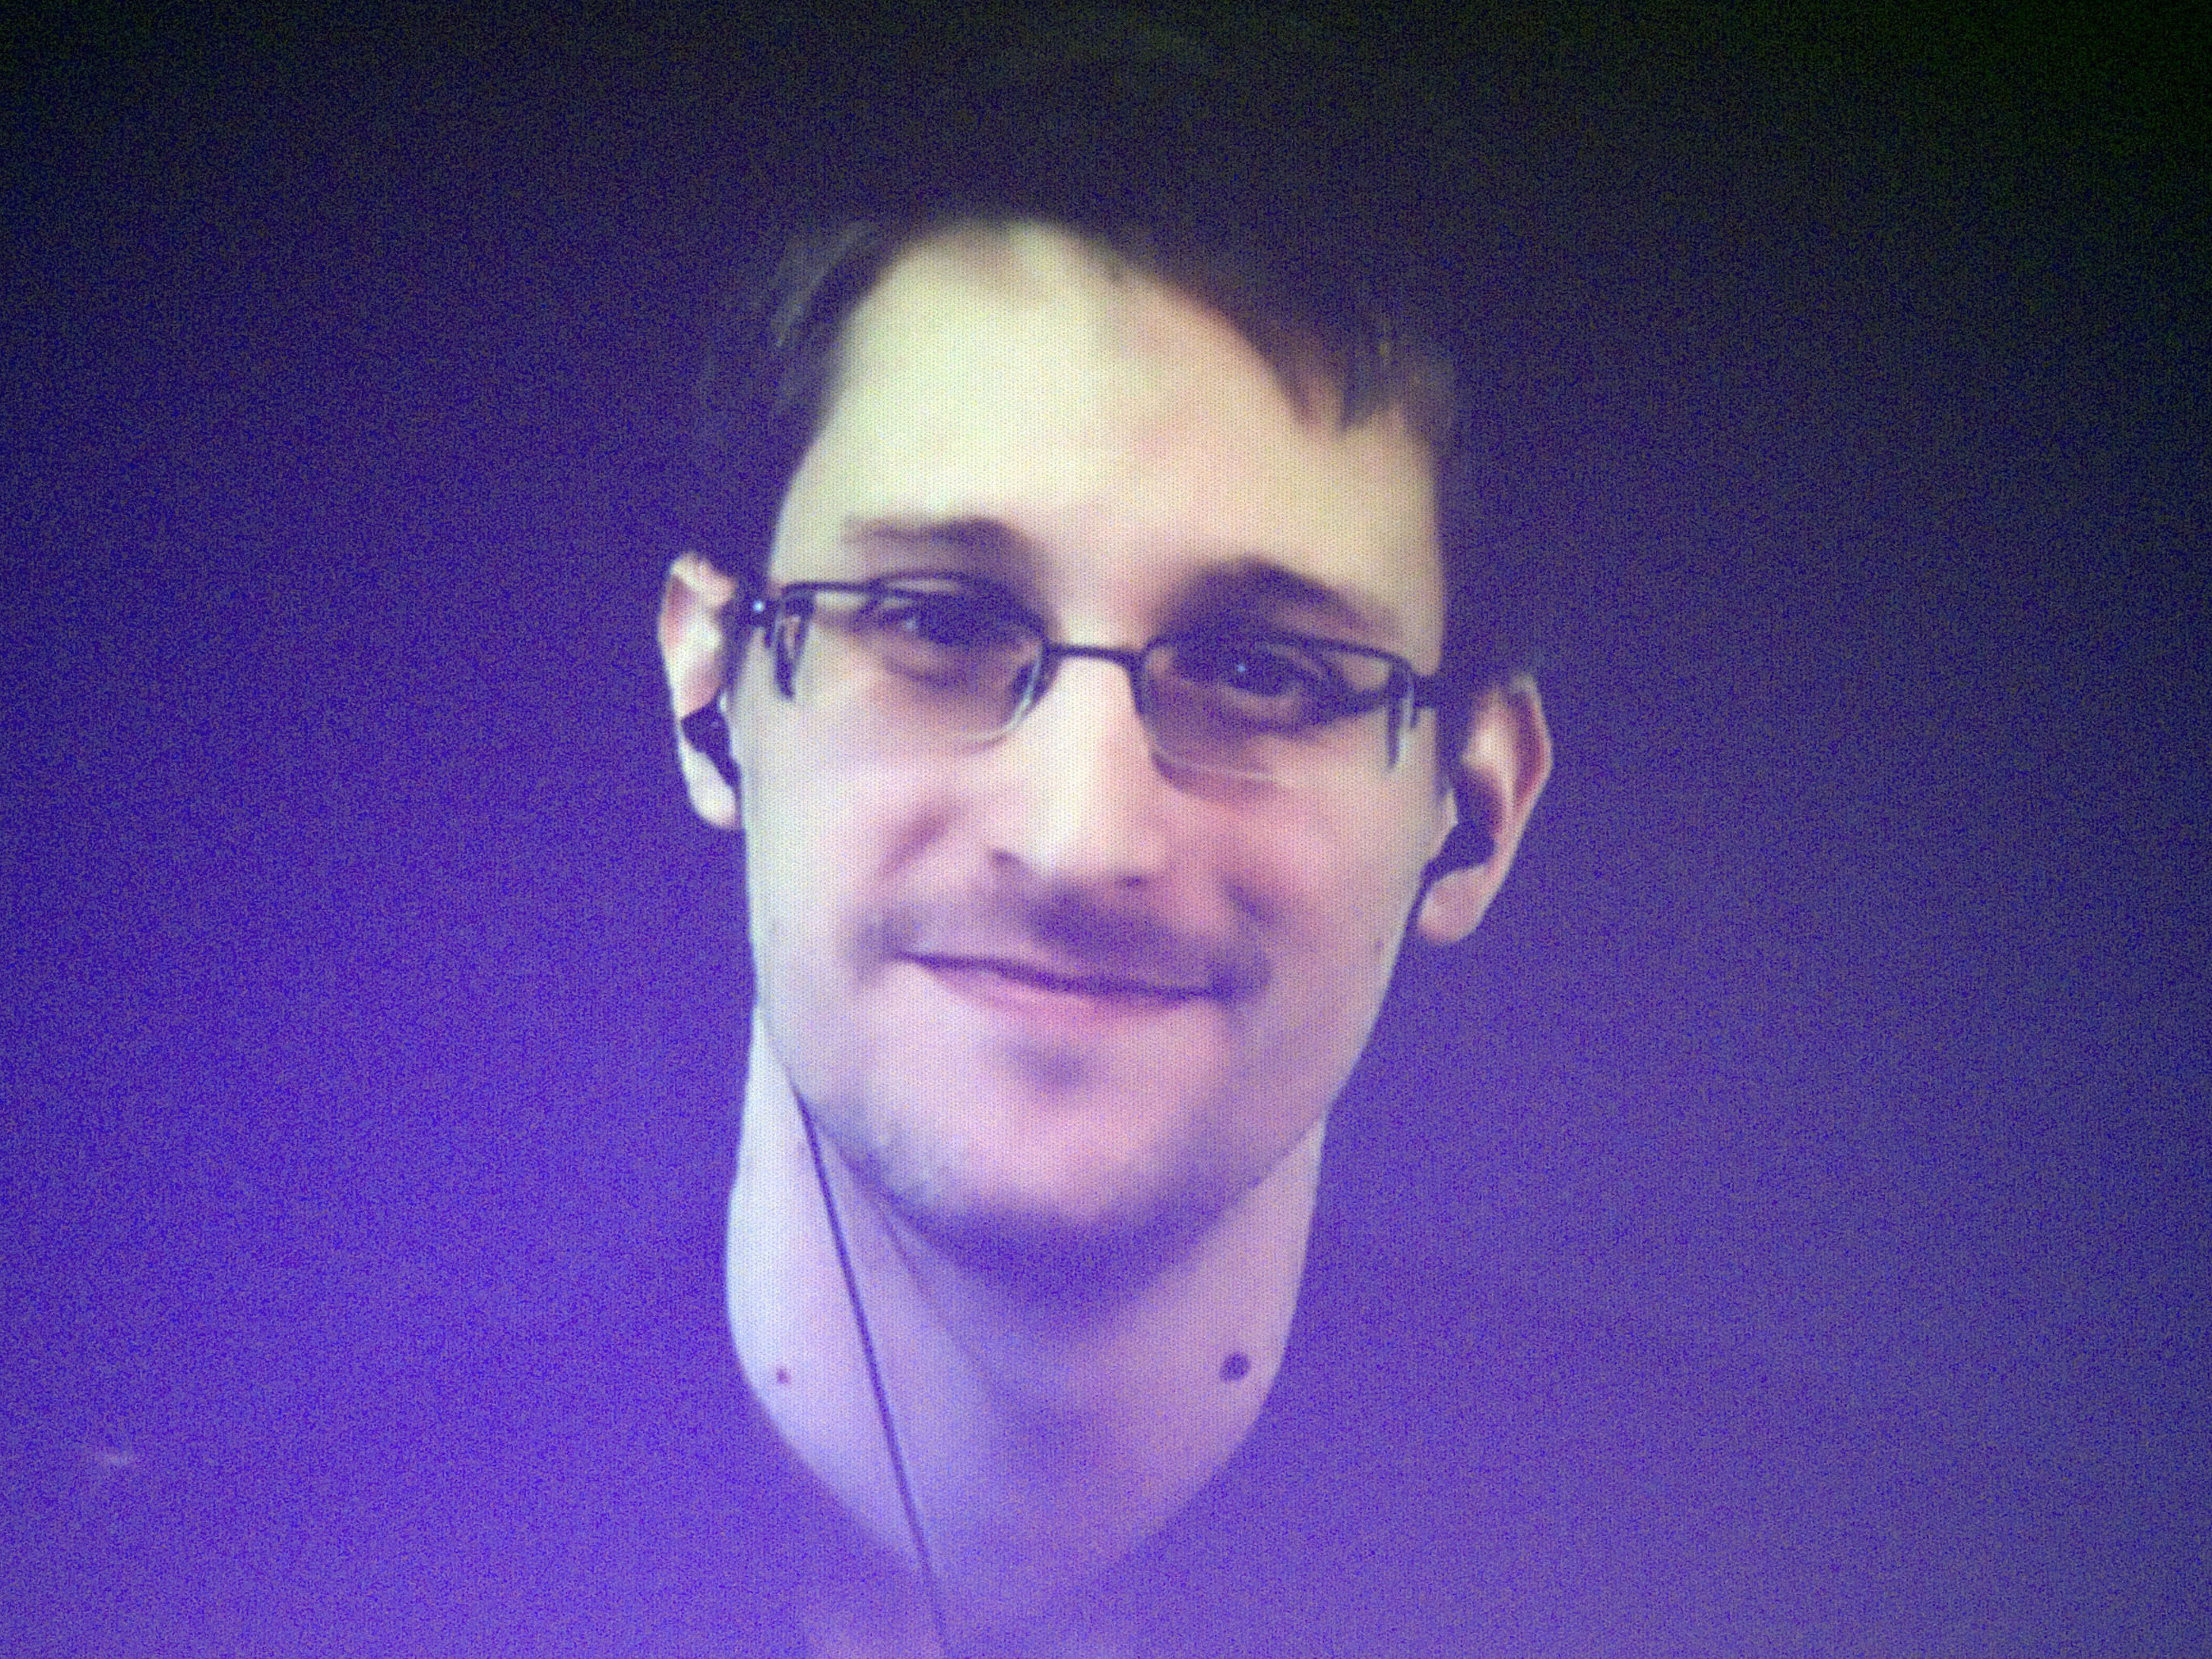 House Intel Committee Blasts Snowden as Disgruntled Worker, 'Serial Fabricator'